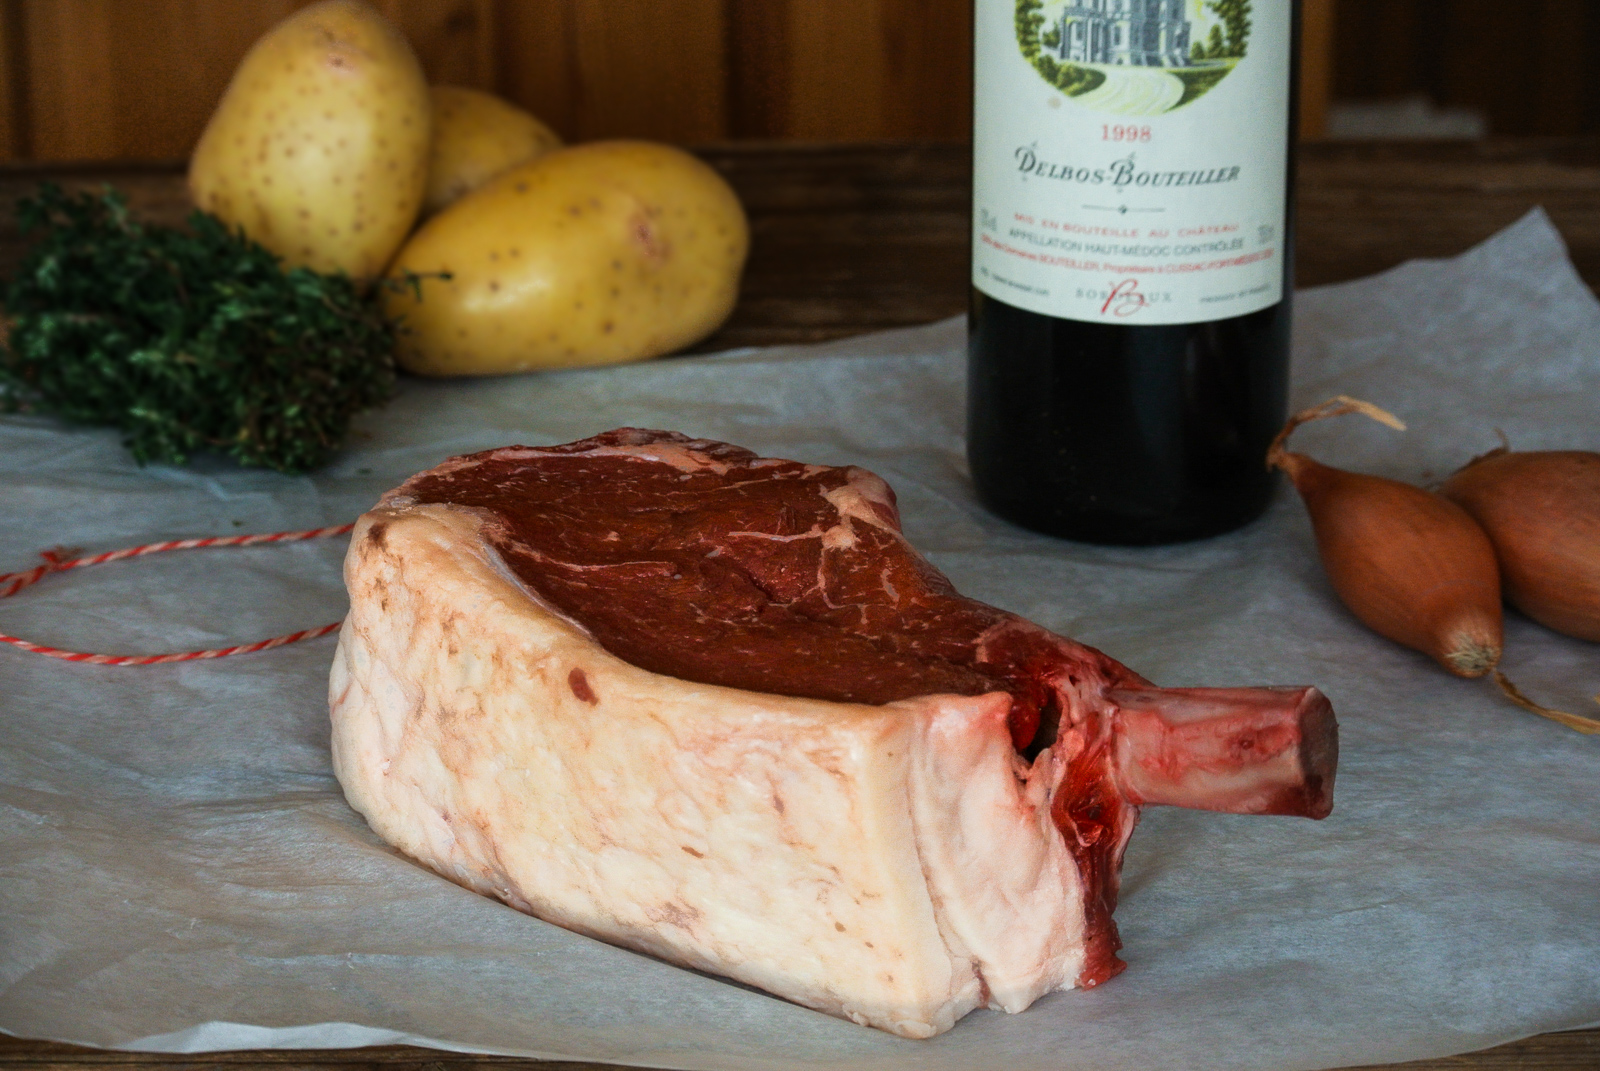 21 day aged aberdeen angus beef rib and a red bordeaux